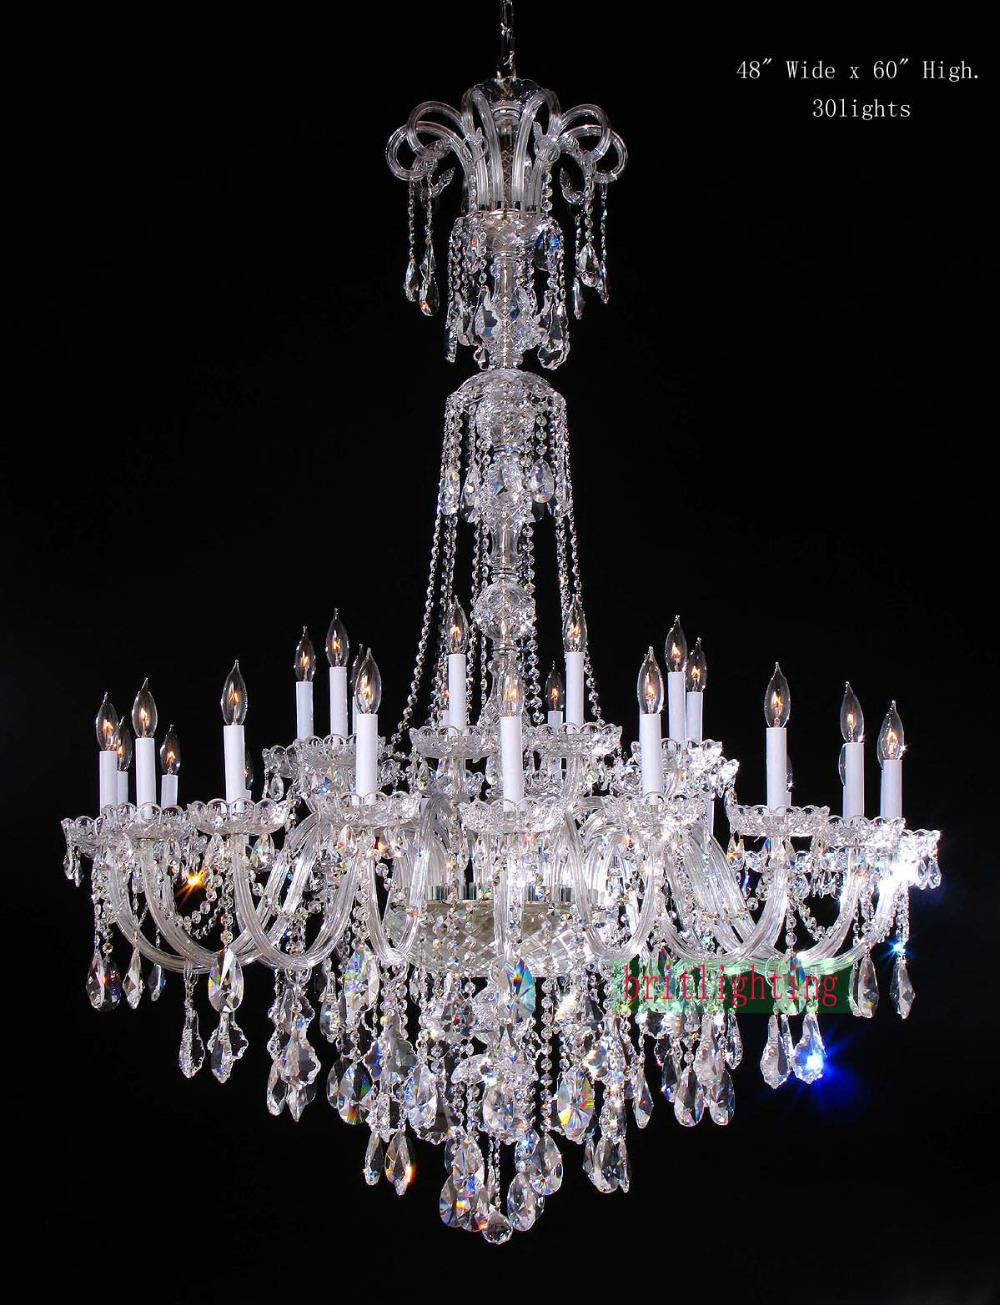 Lamp modern crystal chandeliers 5 star hotel chandelier led crystal lamp modern crystal chandeliers 5 star hotel chandelier led crystal candle chandeliers large elegant crystal chandelier foyer luxury chandeliers crystal aloadofball